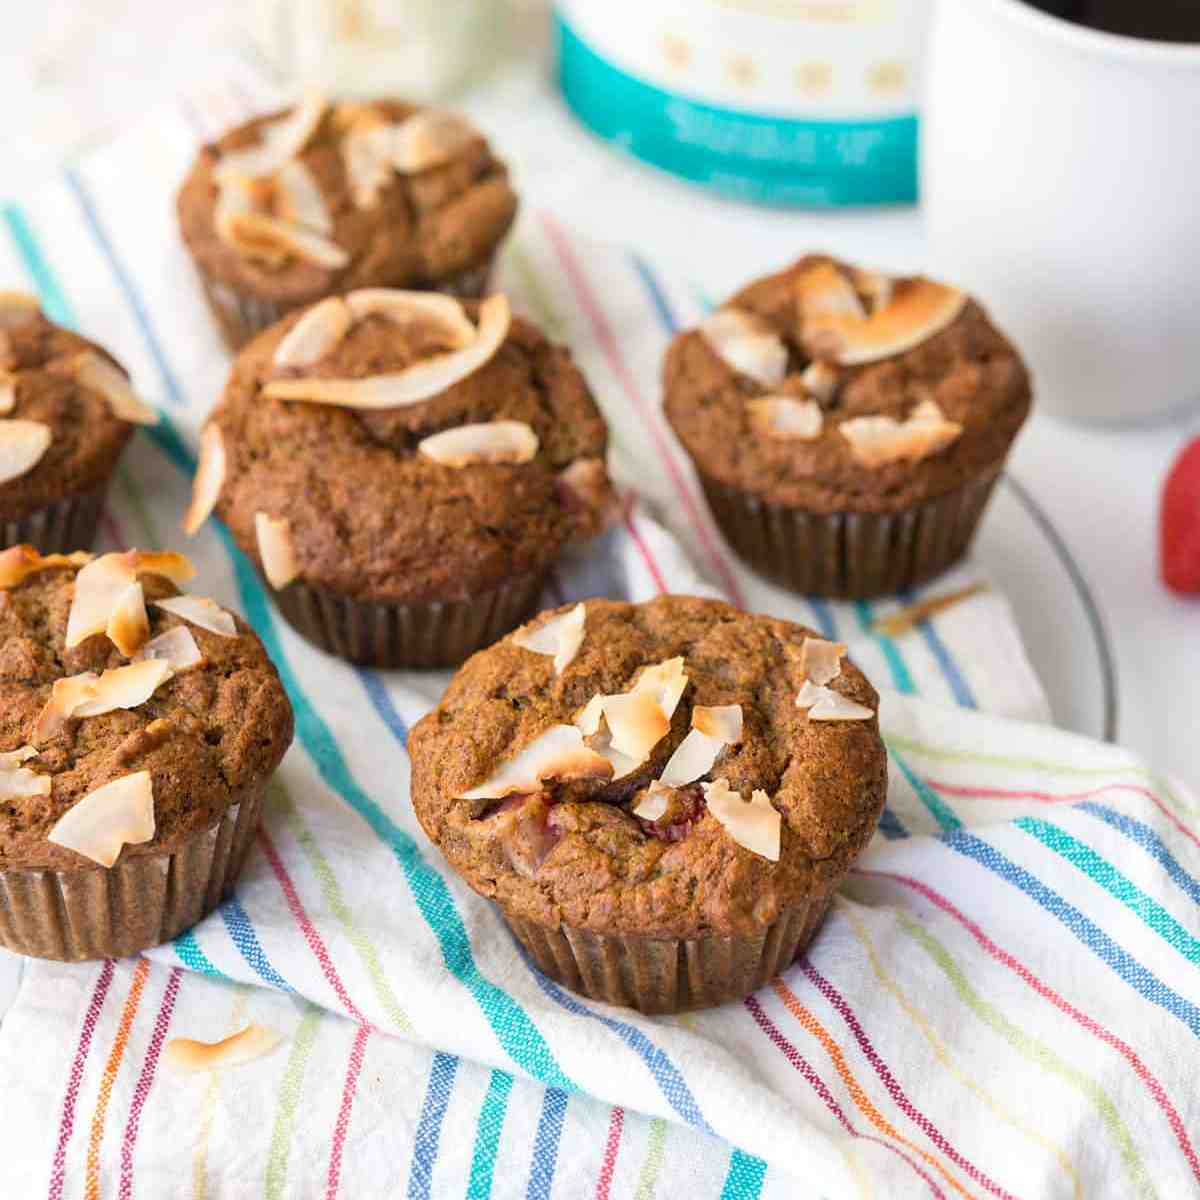 Whole wheat muffins bursting with banana and strawberry flavors, filled with walnuts and plant-based protein. The perfect breakfast! #vegan